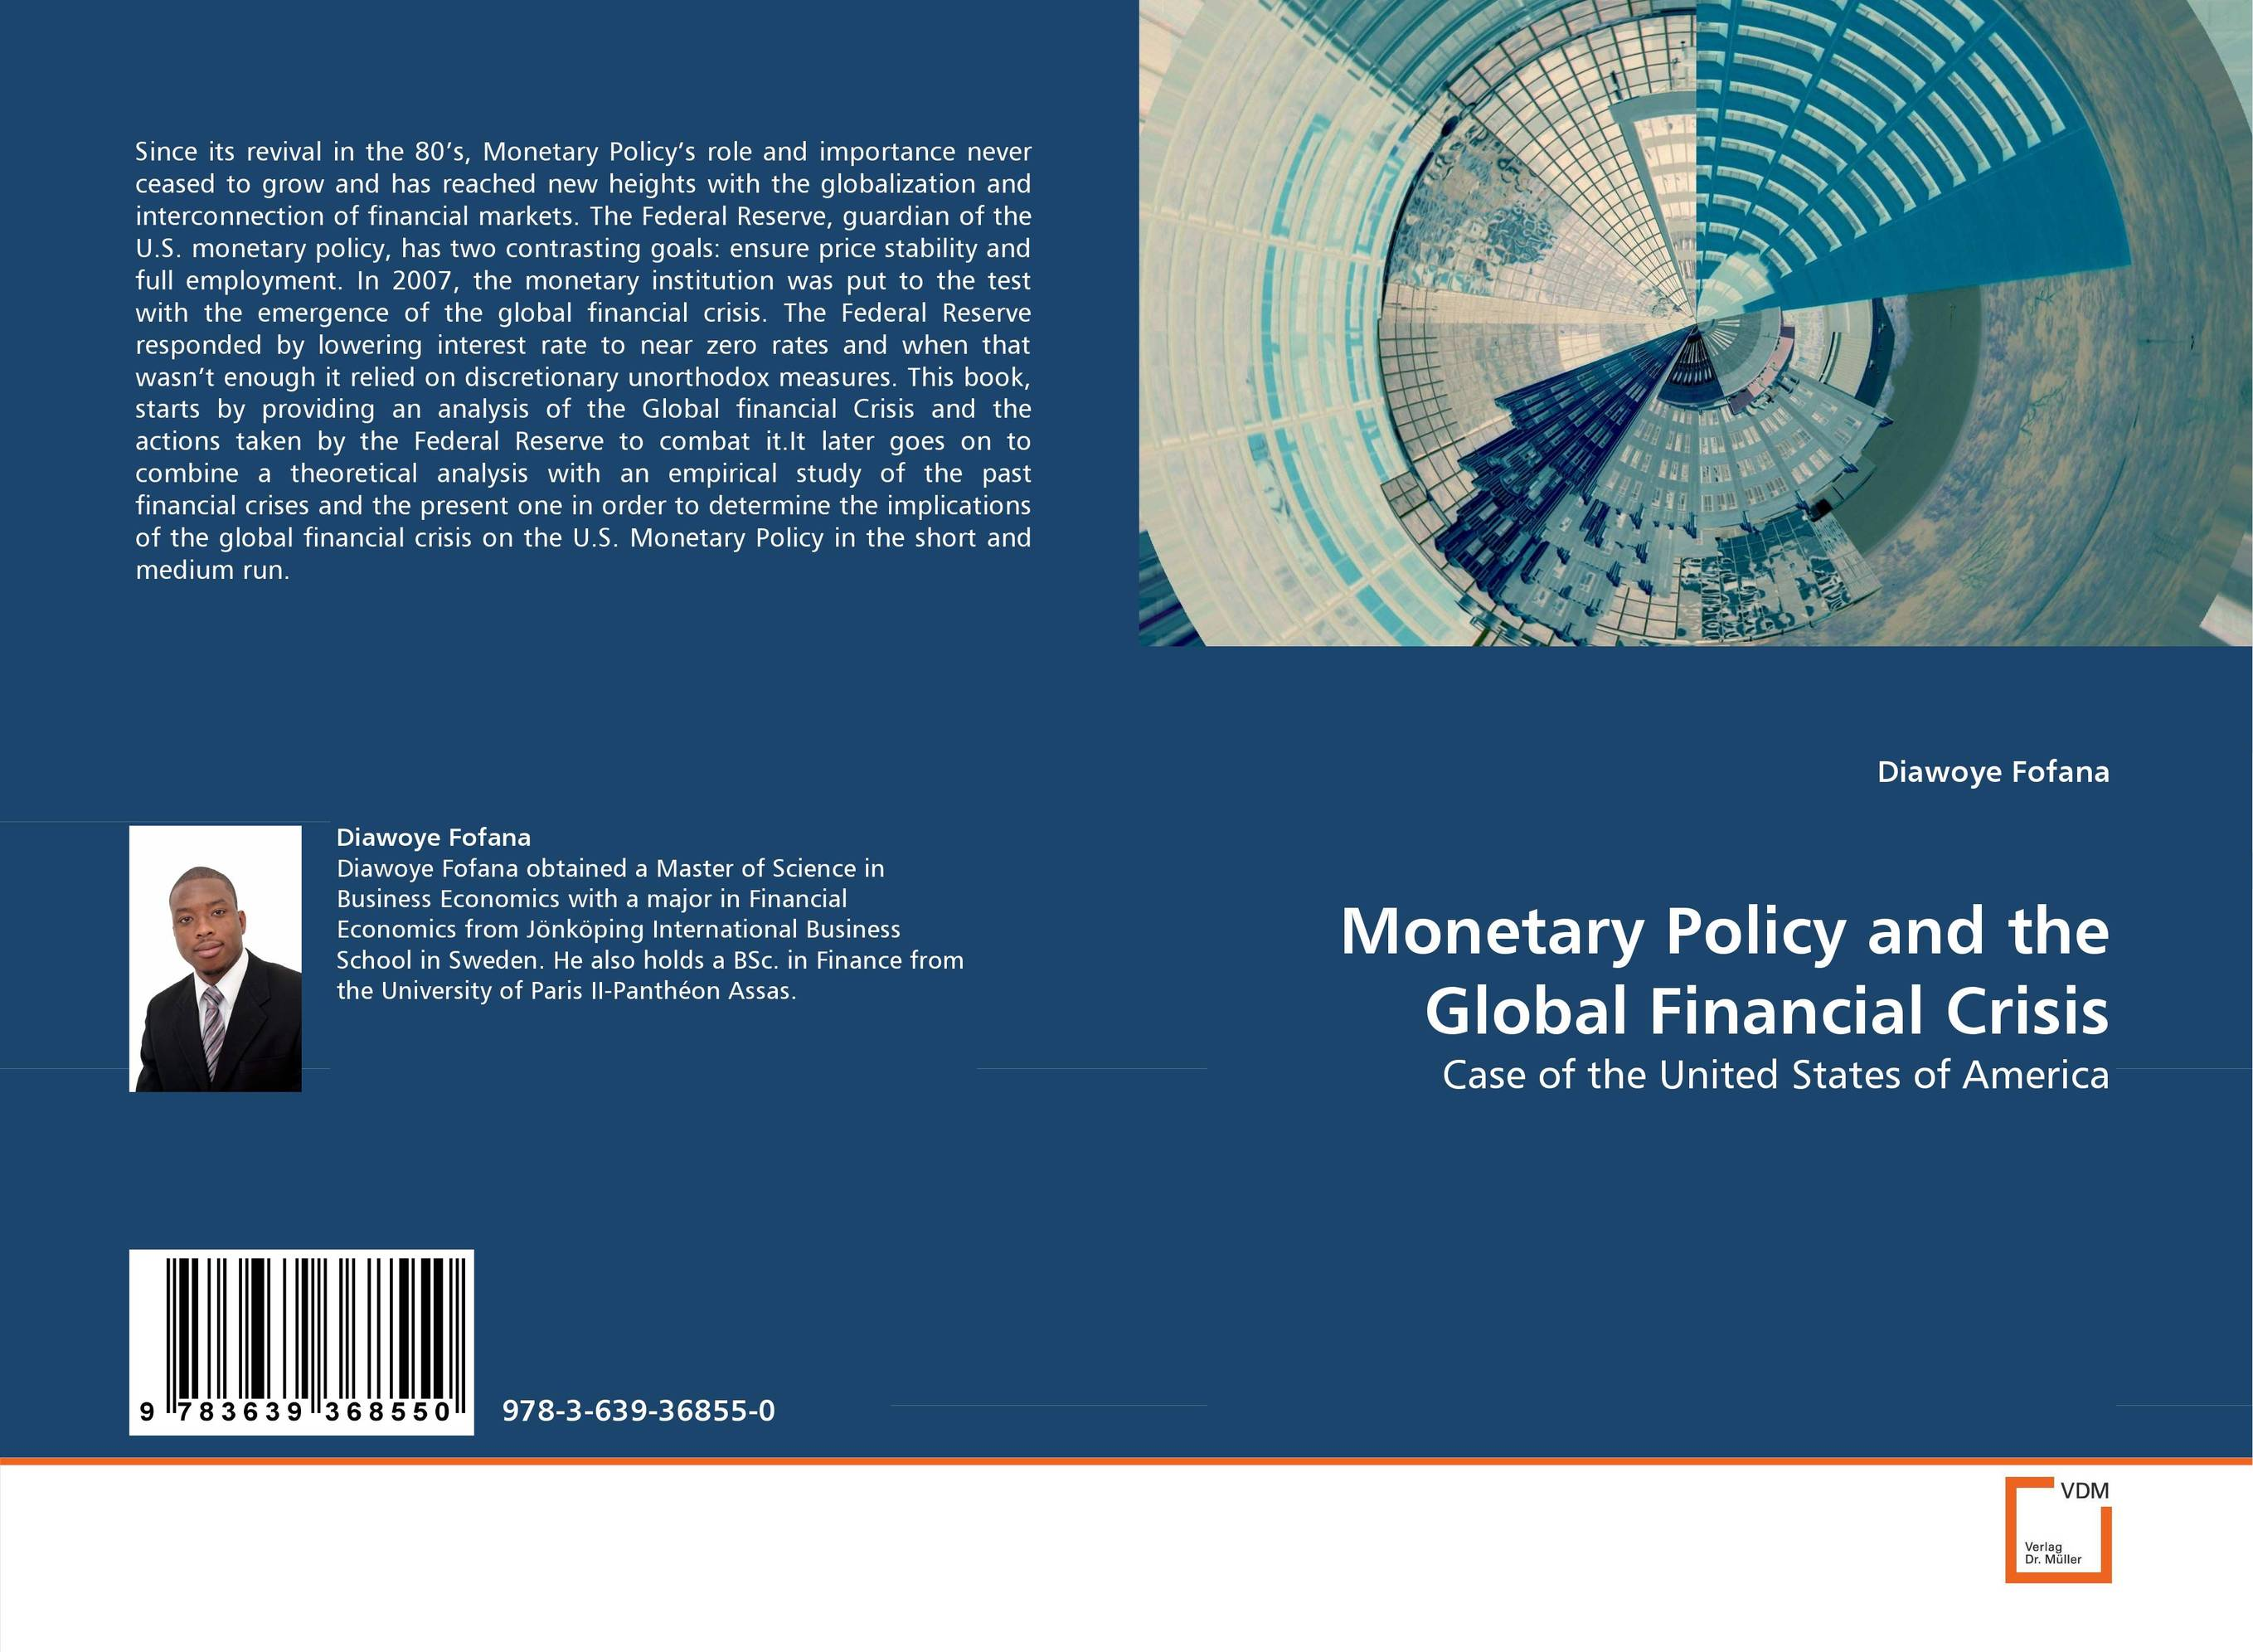 Monetary Policy and the Global Financial Crisis